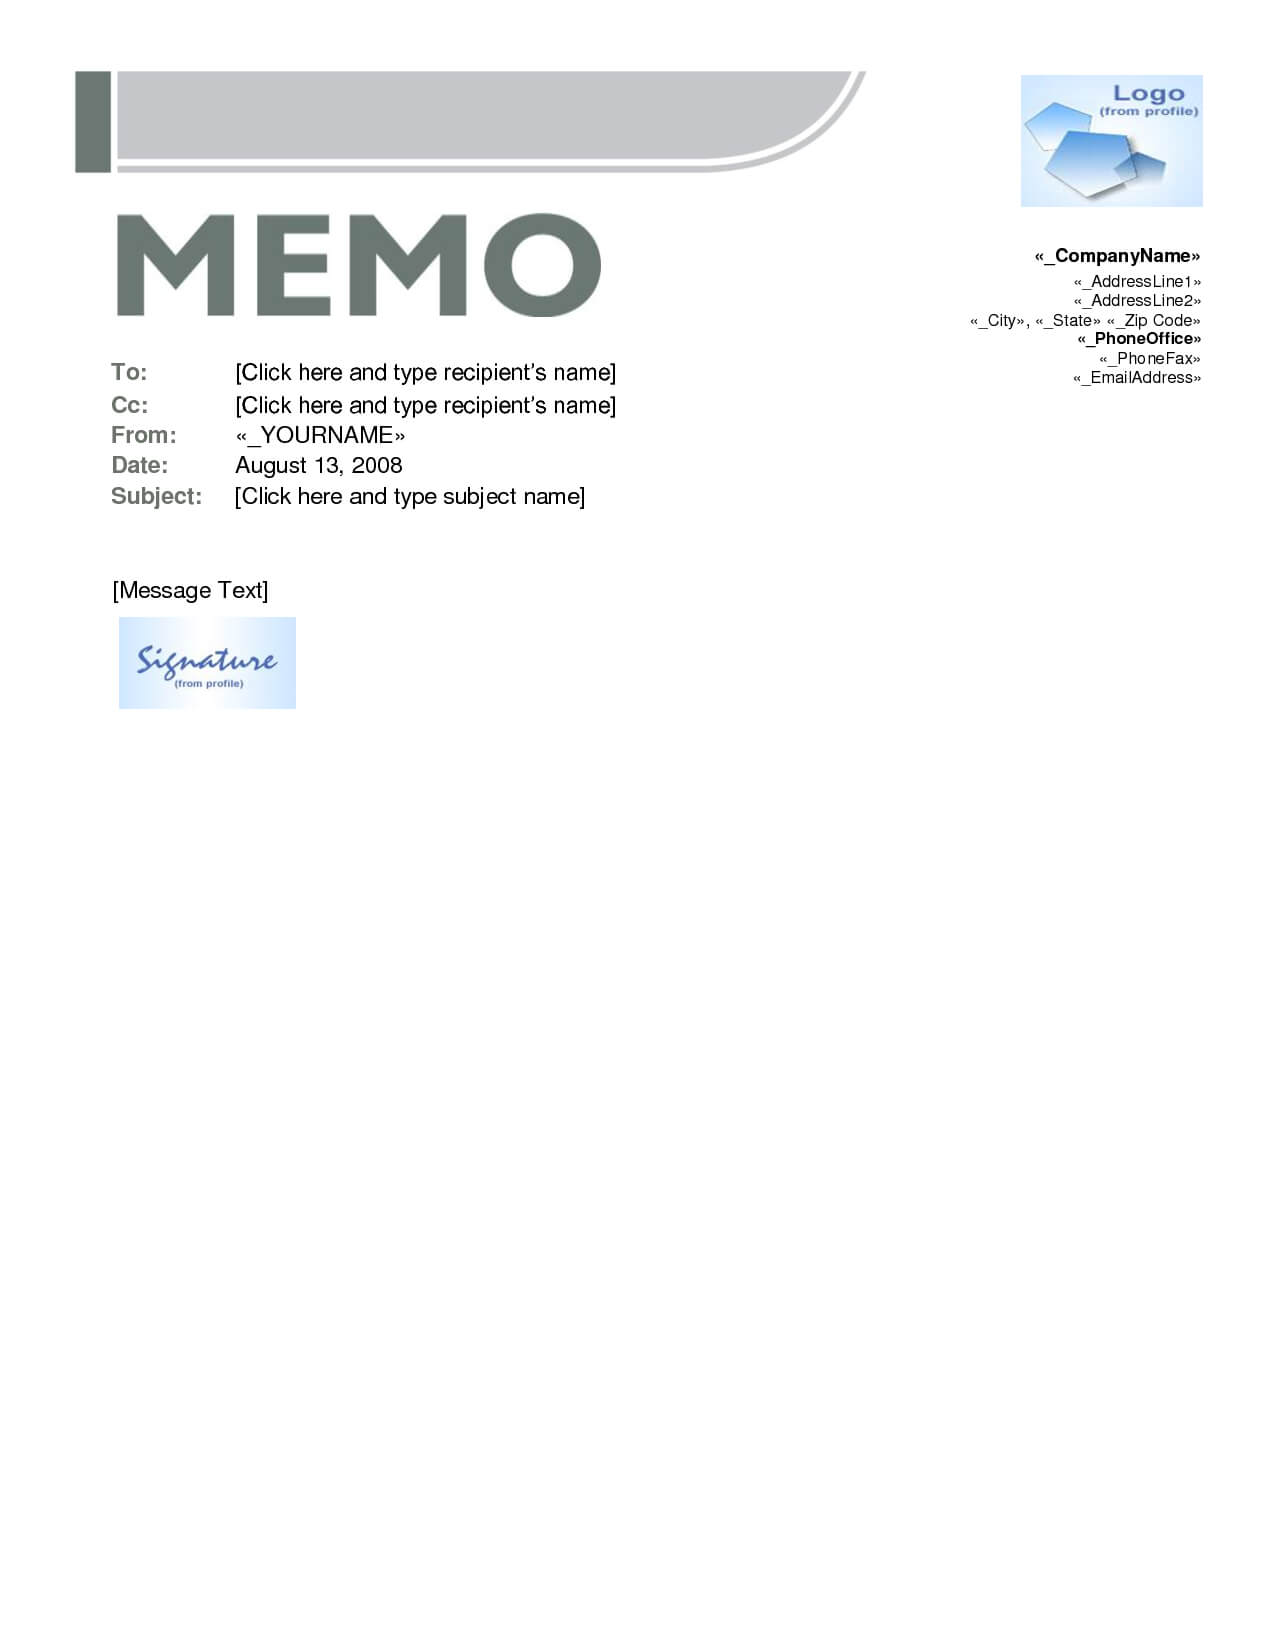 005 Microsoft Word Memo Template 421399 Templates For Within Memo Template Word 2010